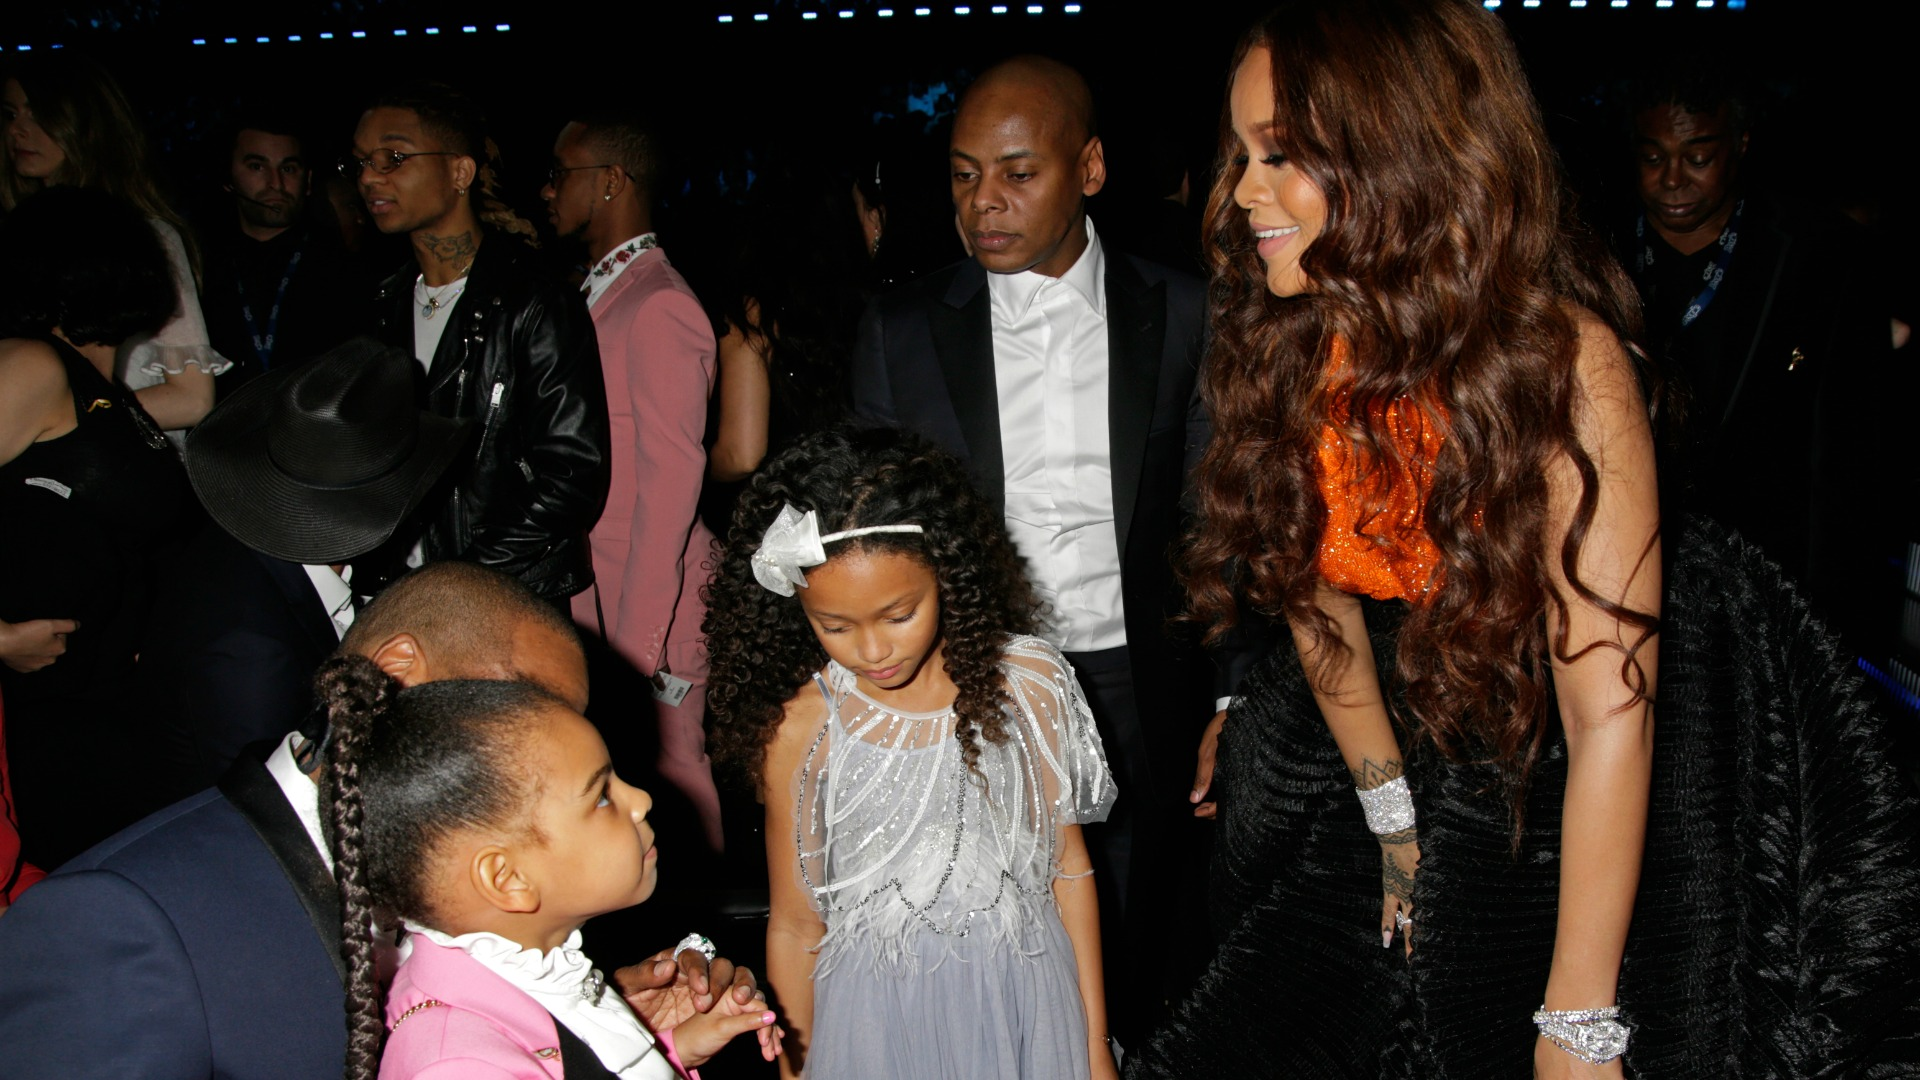 Rihanna smiles when she approaches Blue Ivy, who's to be sitting on the lap of her dad, Jay Z.